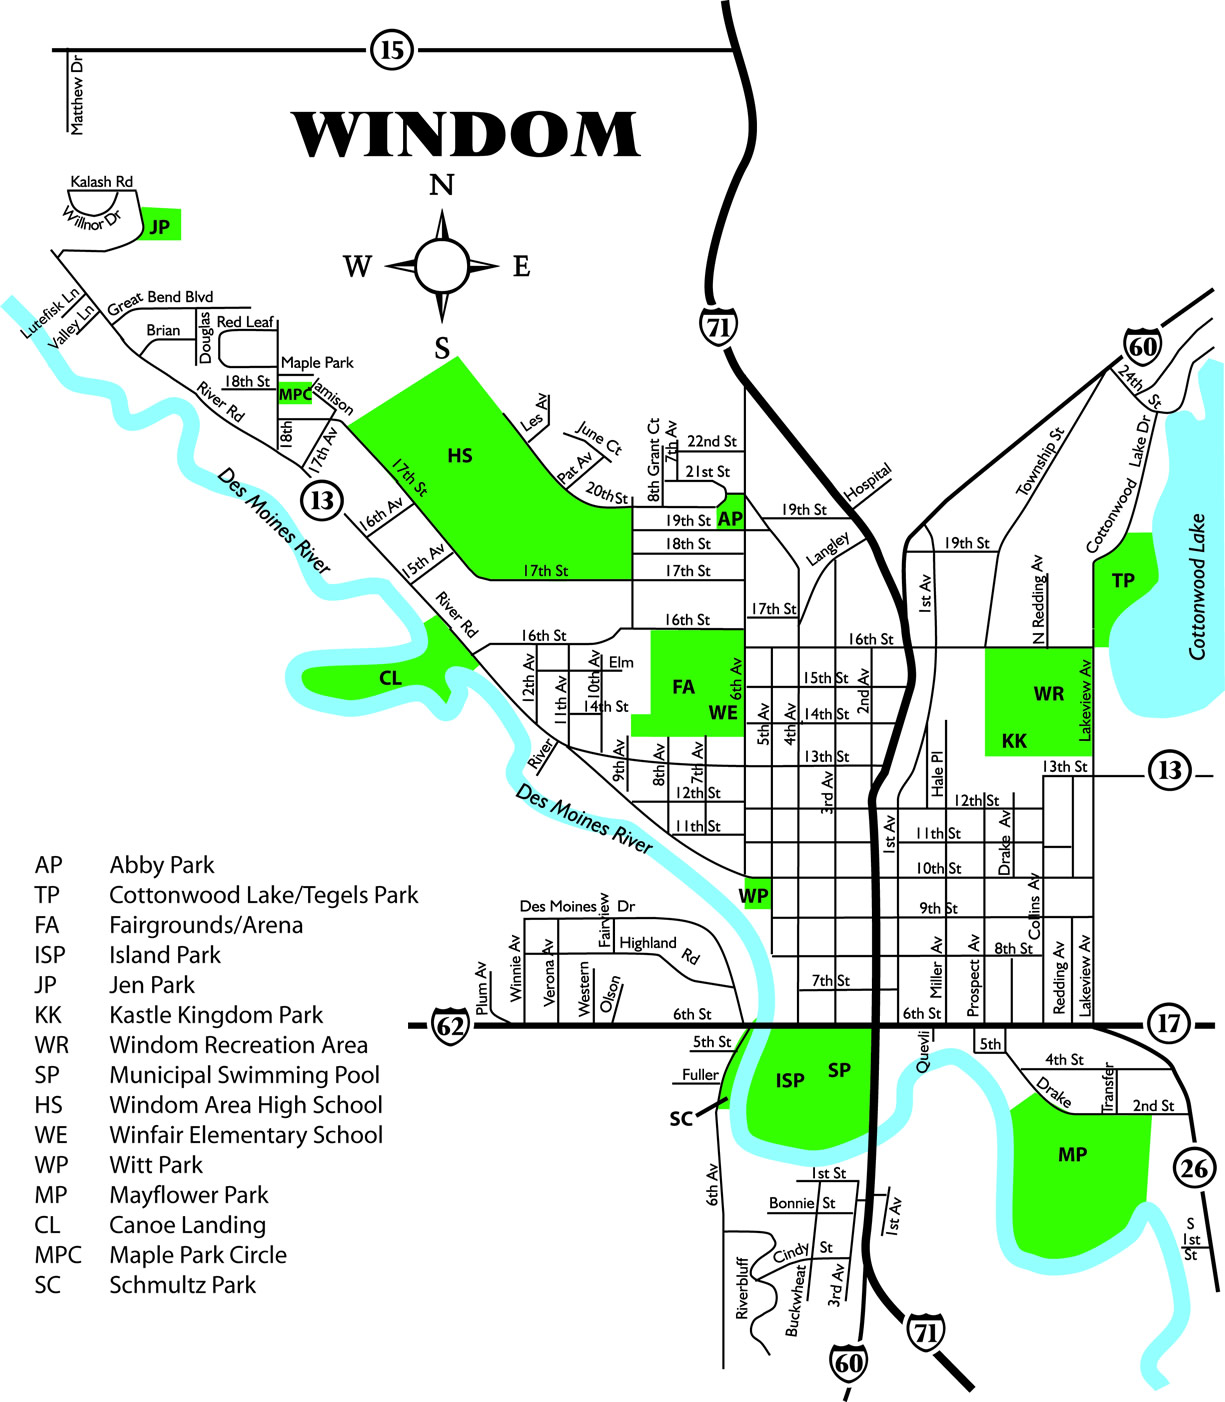 Windom City Parks Map - Windomwindom city